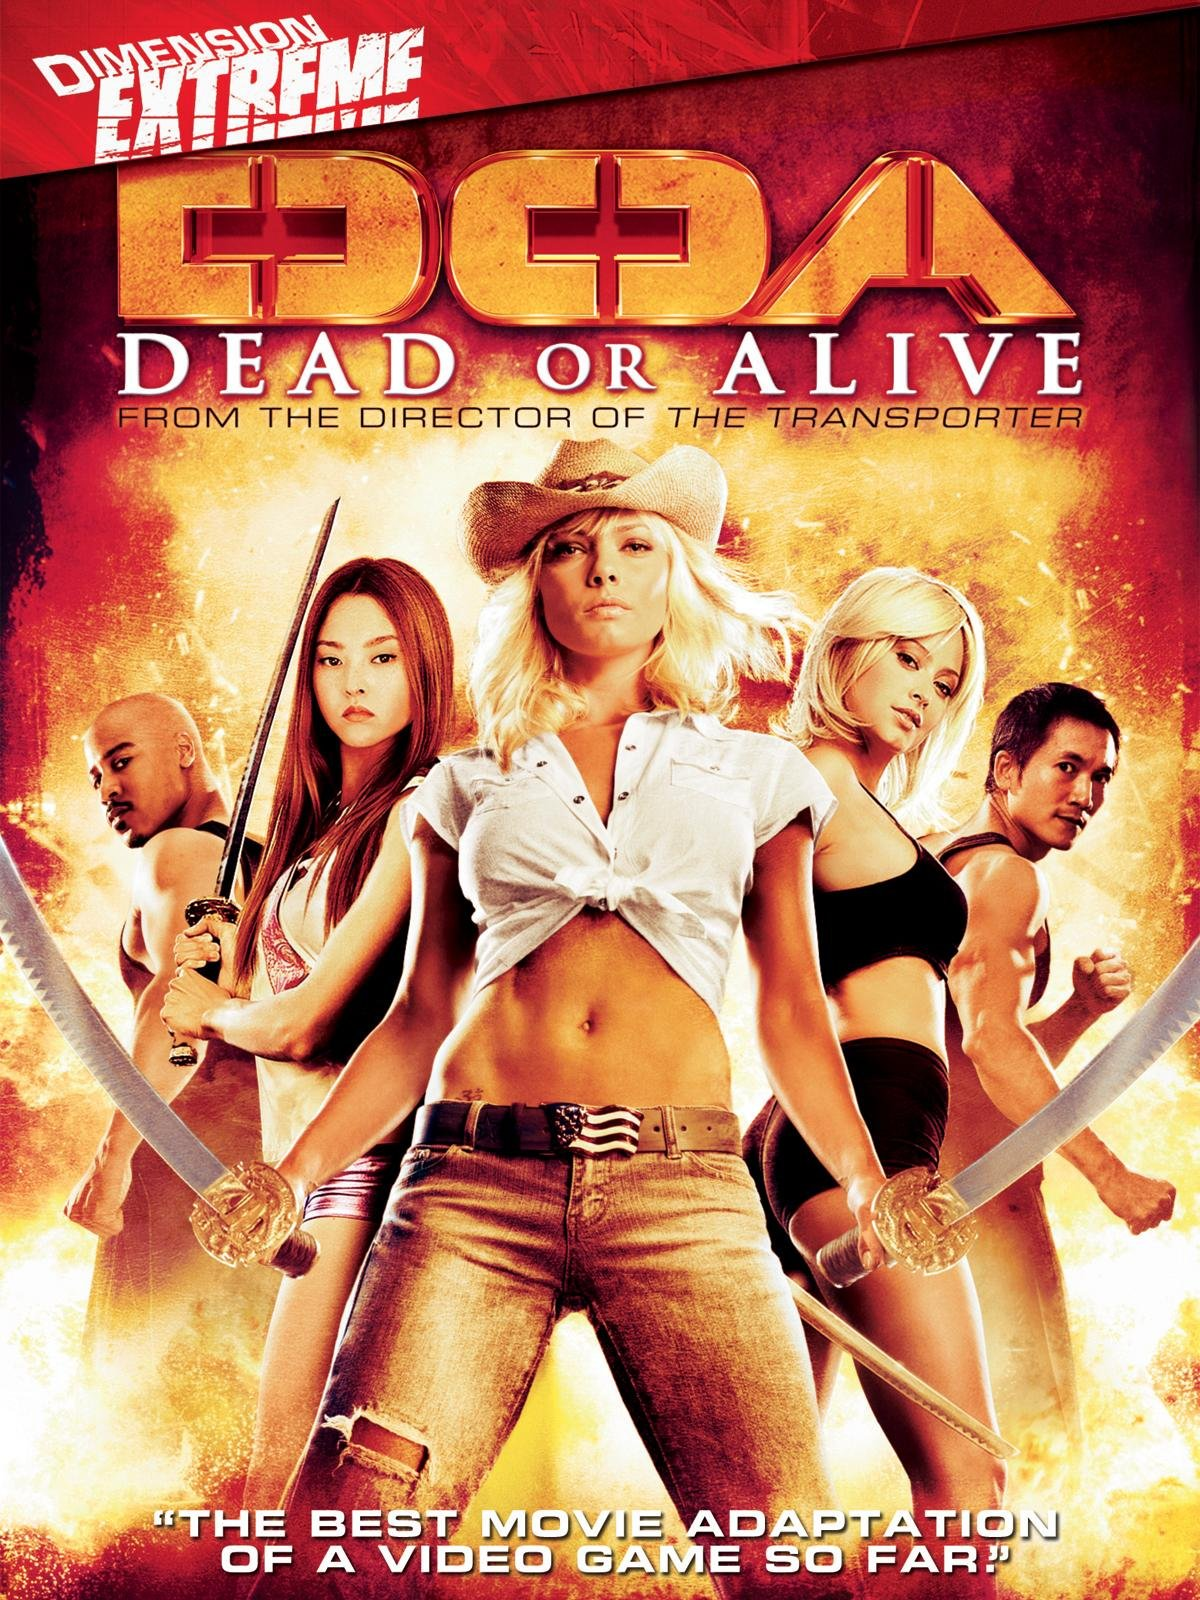 Amazon Com Watch Doa Dead Or Alive Prime Video